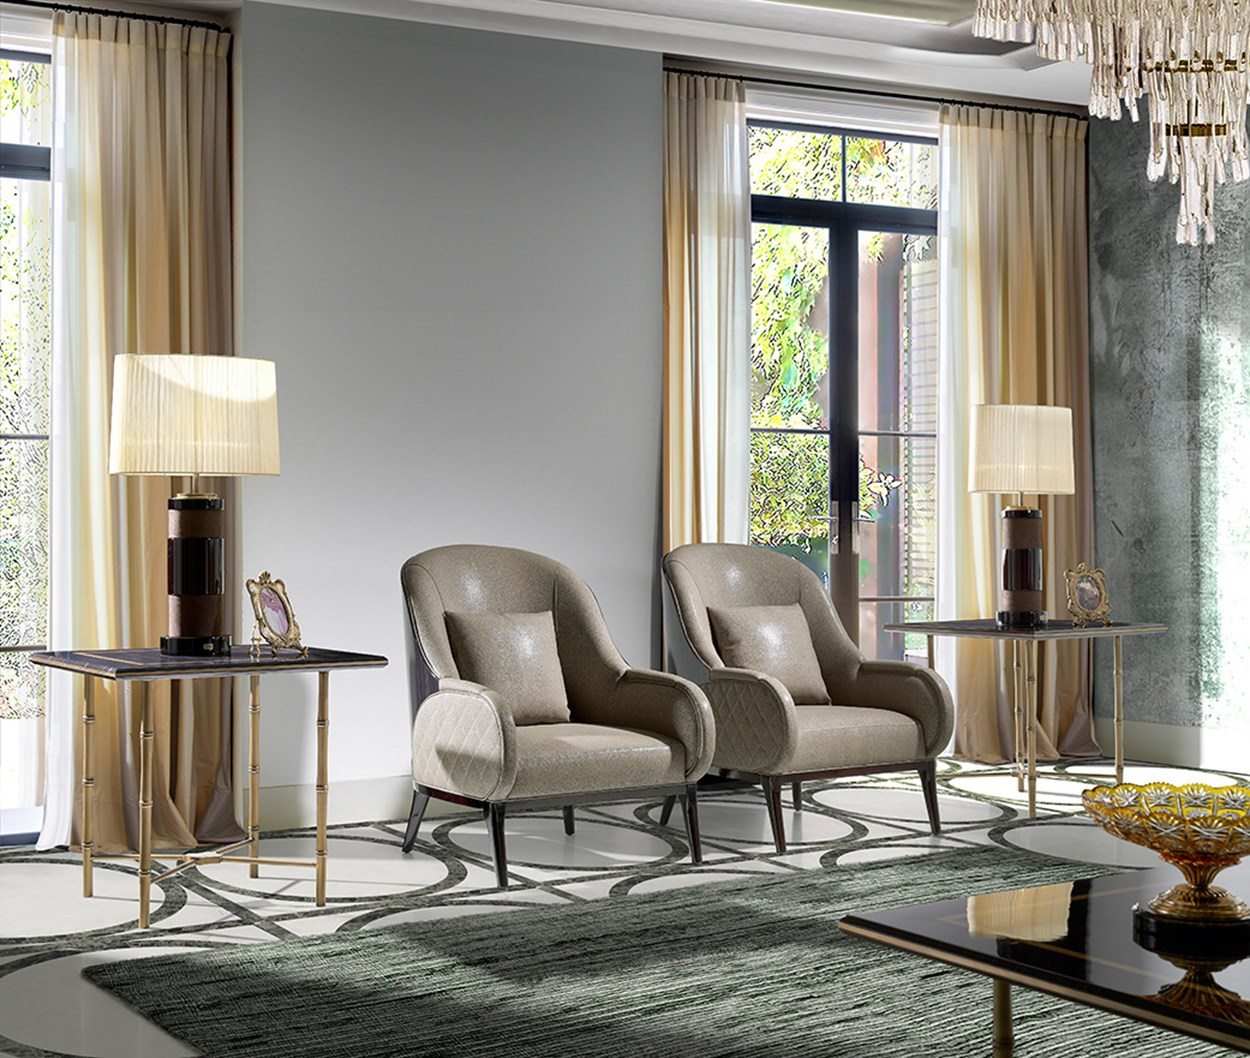 soher-iris-collection-armchairs-2.jpg